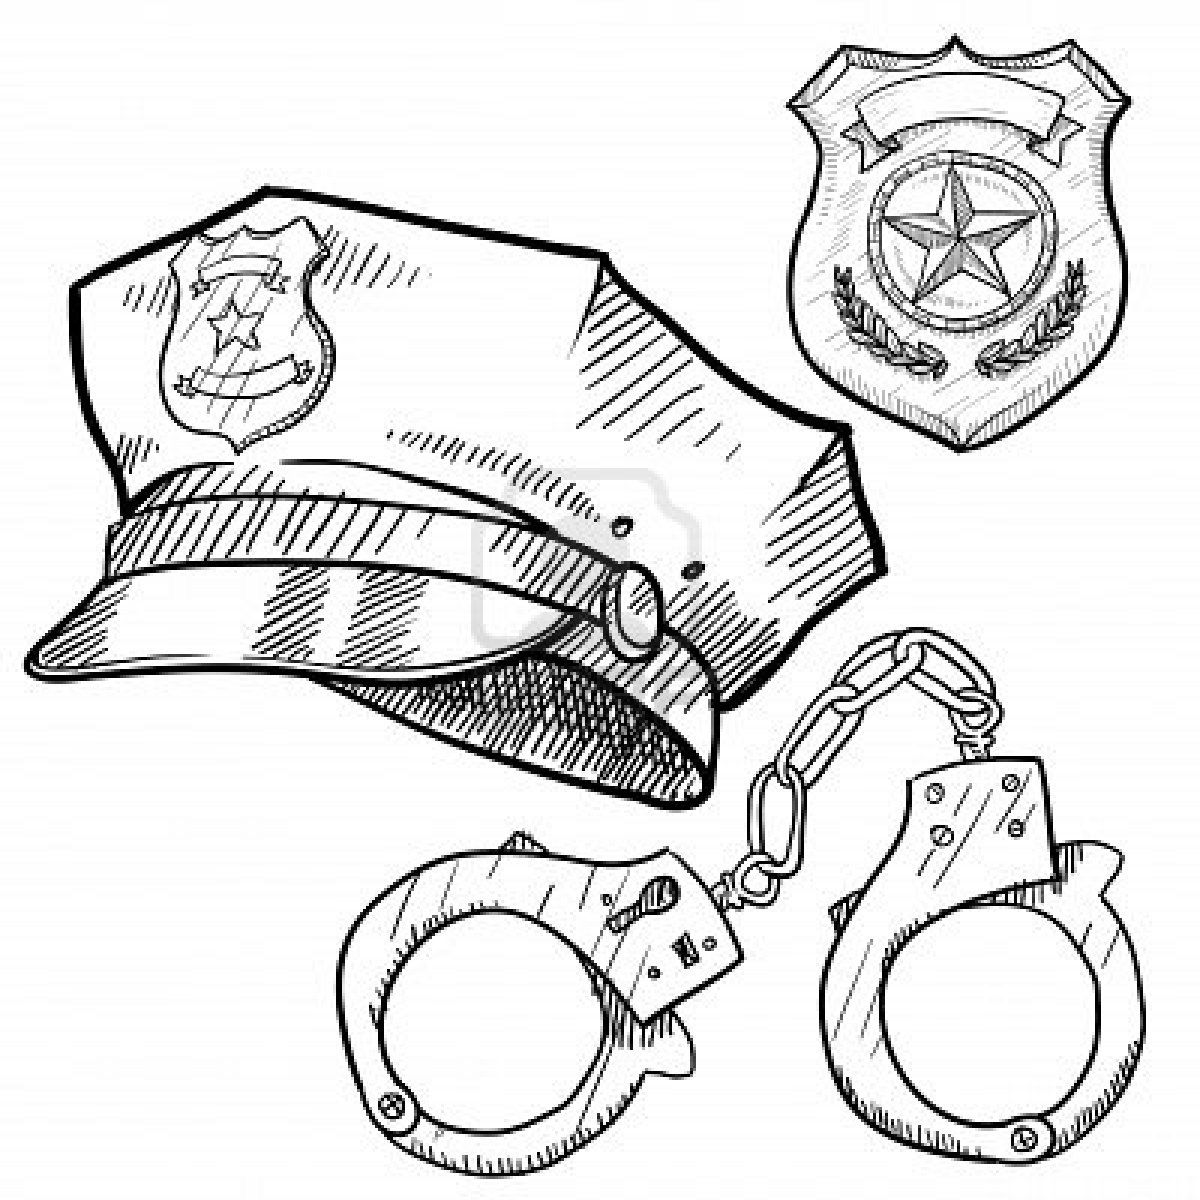 Stock Photo In 2020 Police Hat Police Officer Badge Sketches